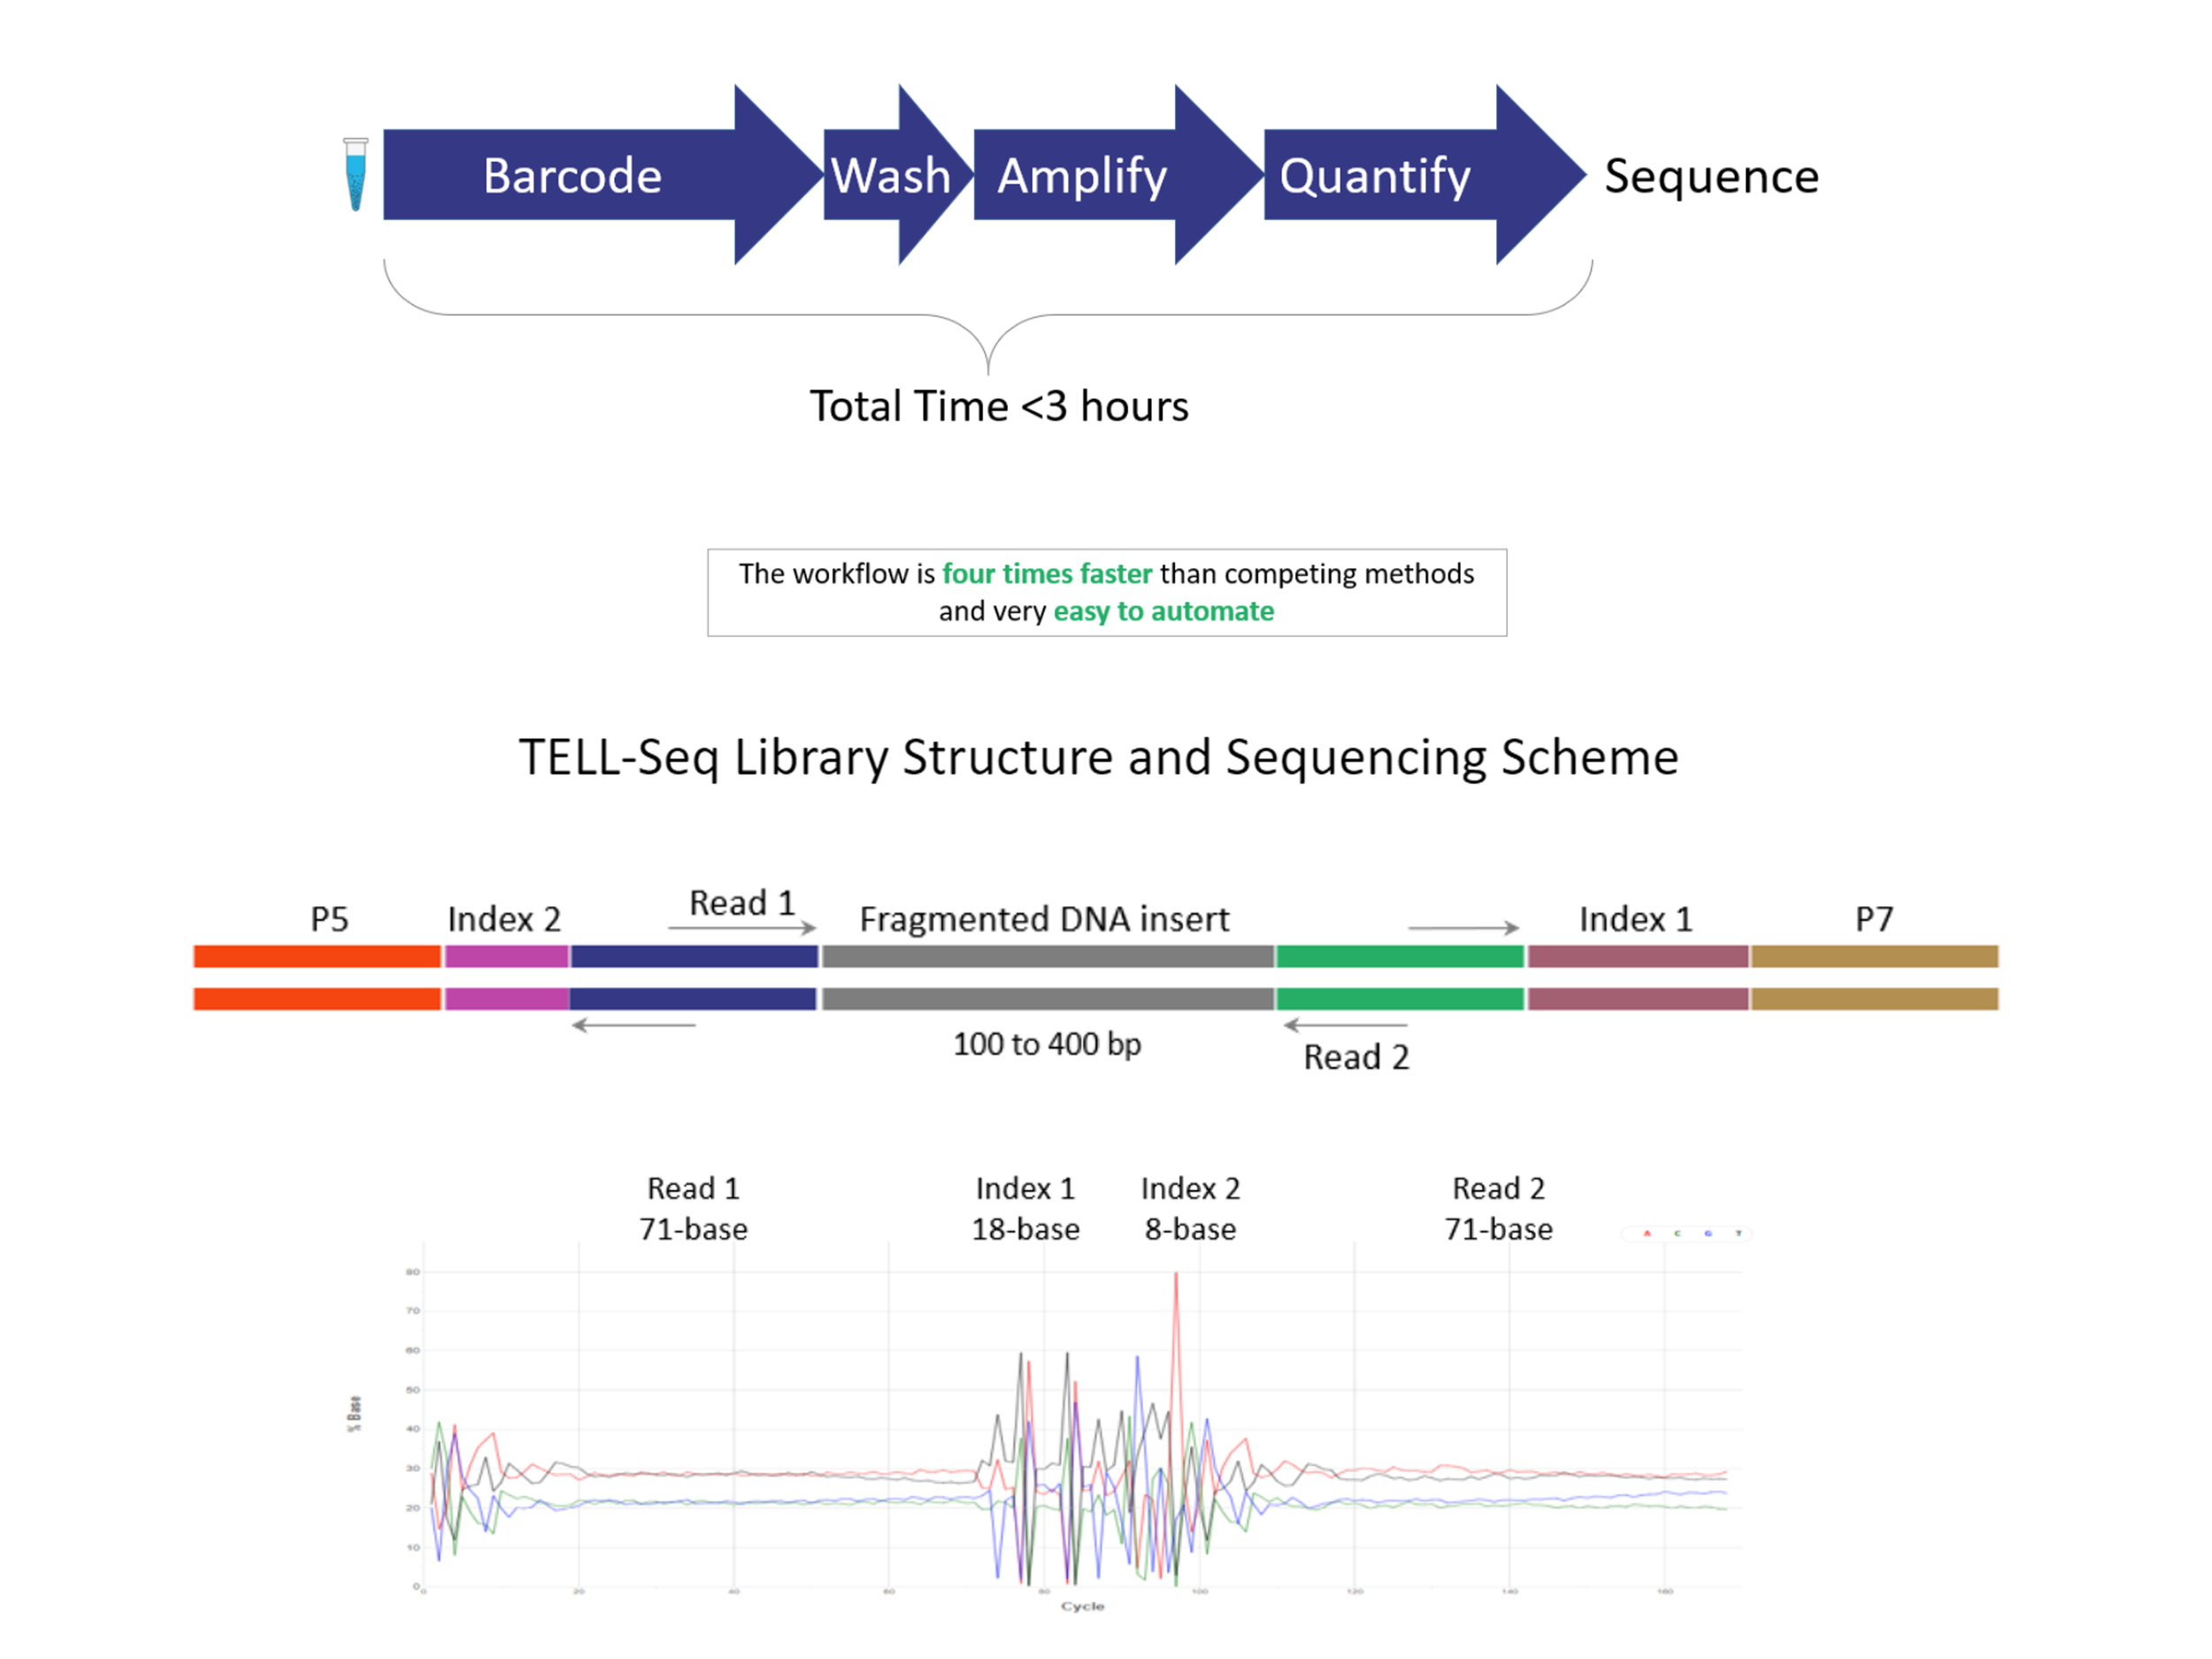 TELL-Seq Library Preparation and Sequencing Workflow